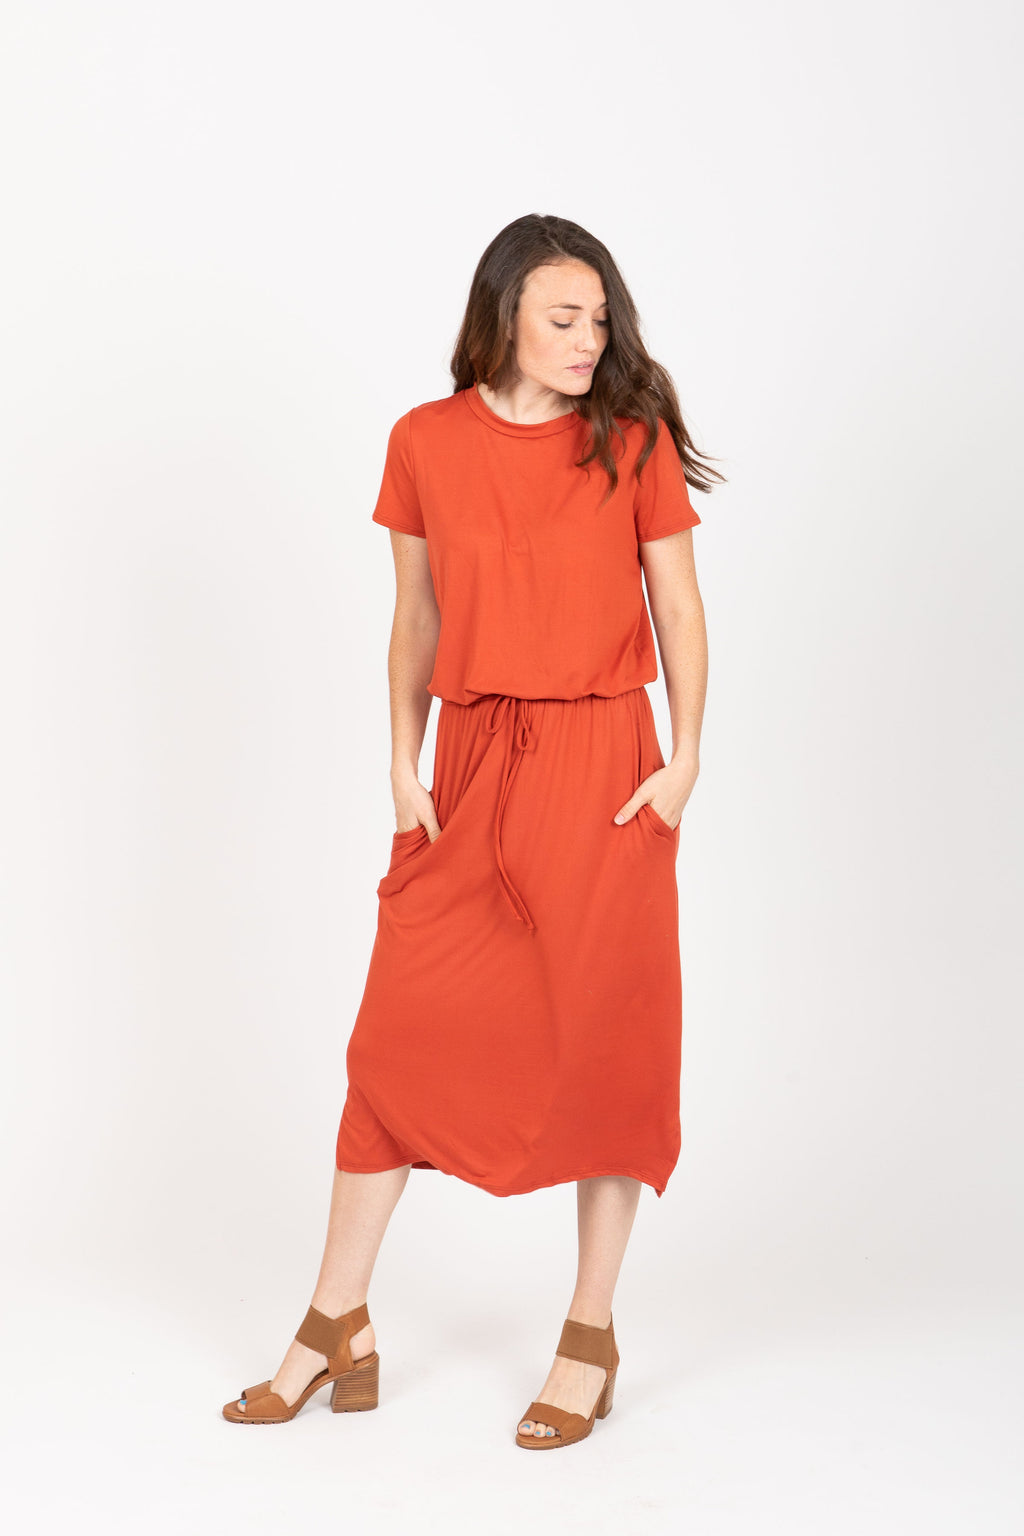 The Willow Casual Empire Dress in Brick